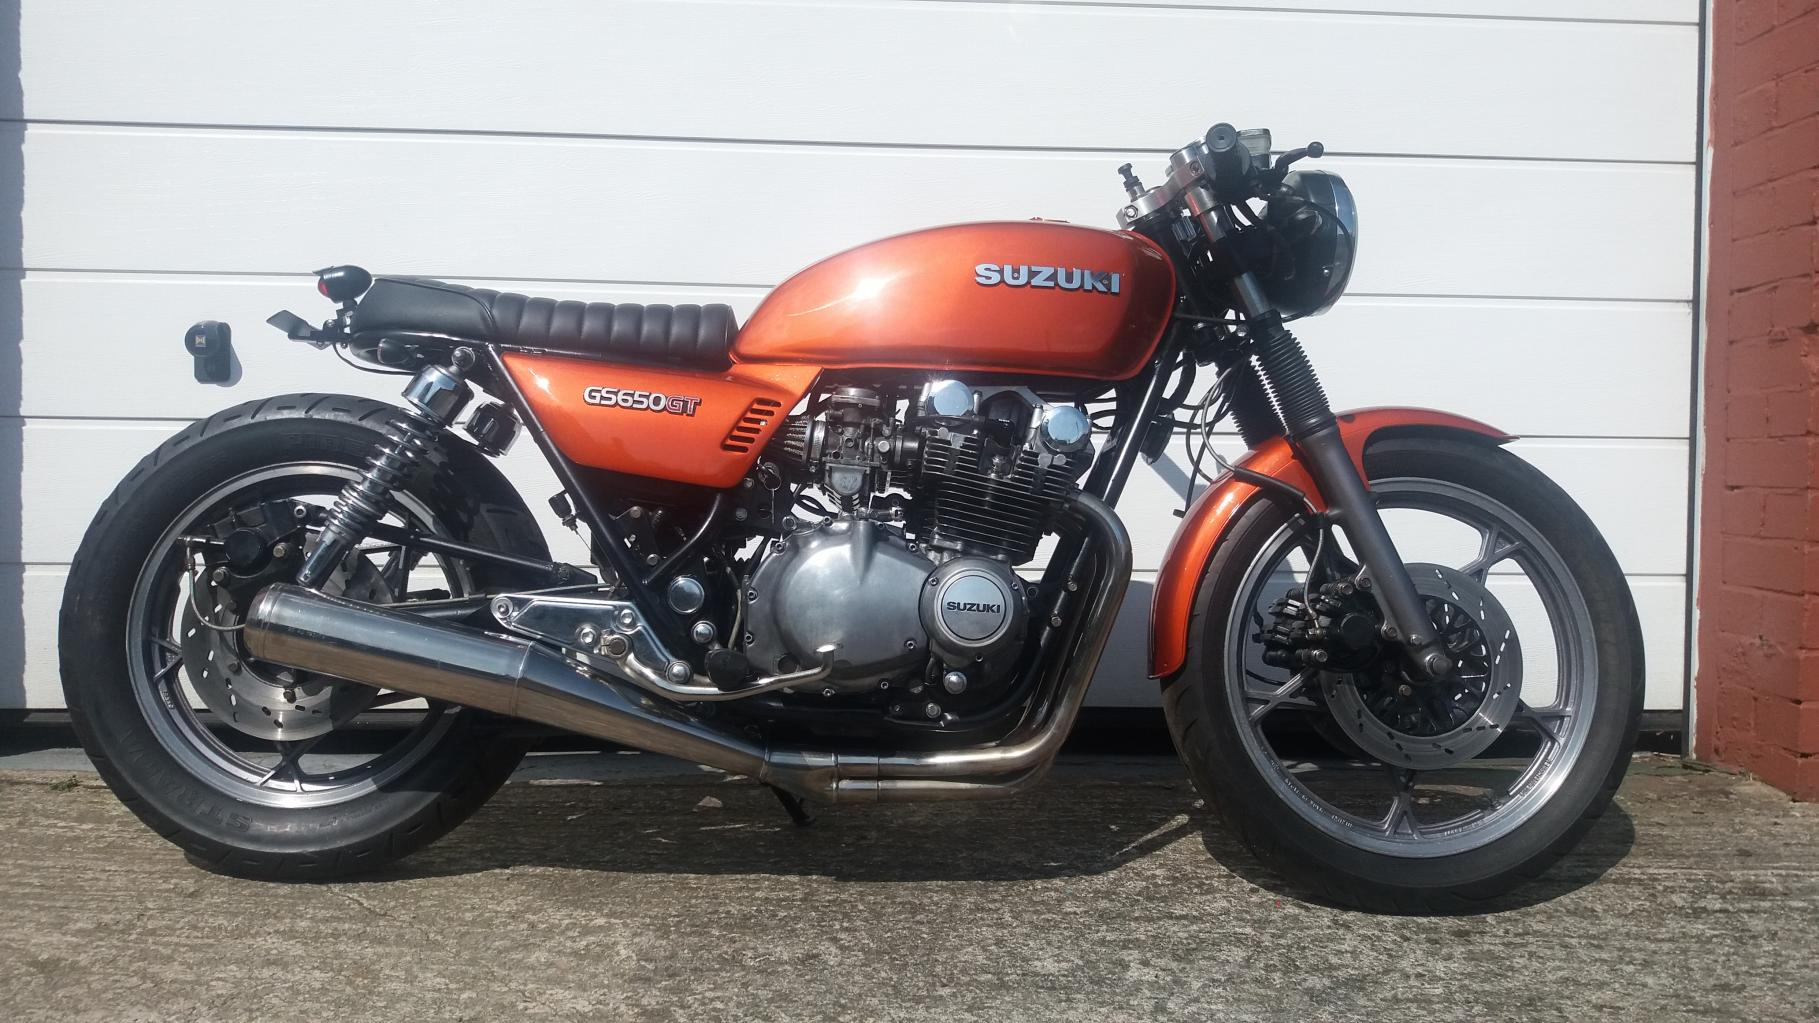 Suzuki Gs650 Brat Cafe Racer Winter Project Almost Finished